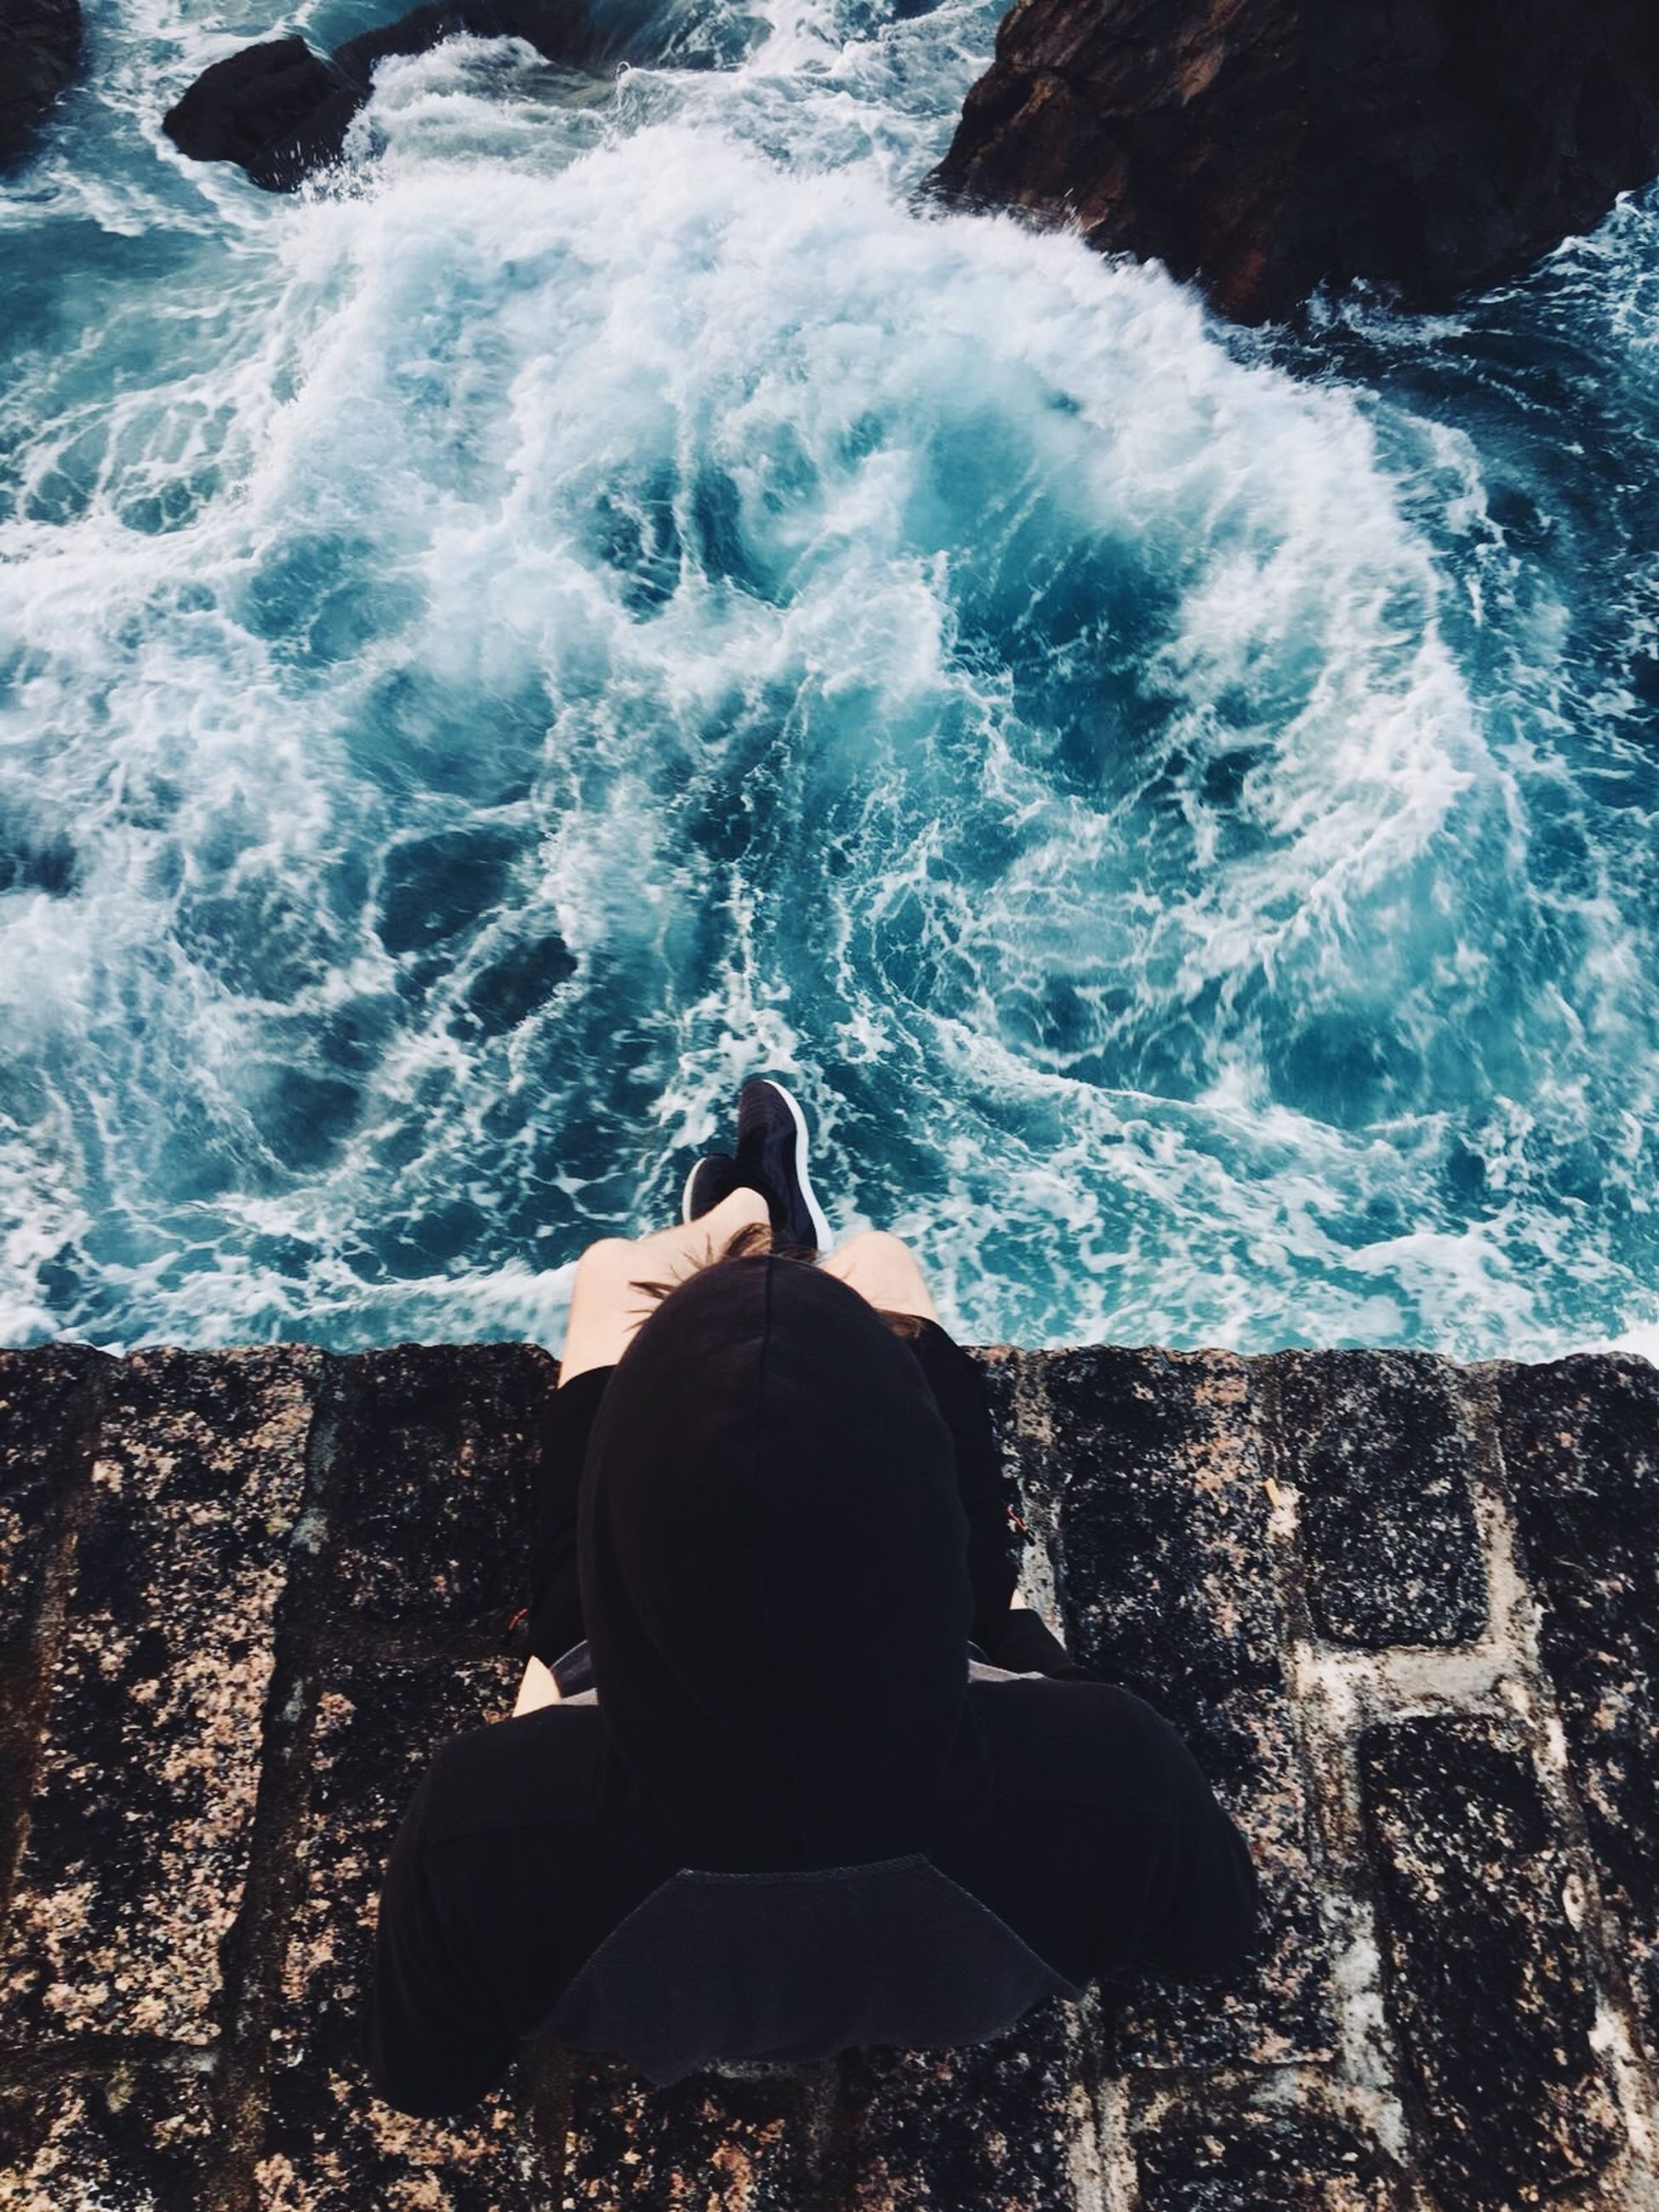 water, sea, one person, real people, rear view, motion, leisure activity, sitting, lifestyles, nature, sport, wave, surfing, relaxation, rock, solid, aquatic sport, day, outdoors, flowing water, power in nature